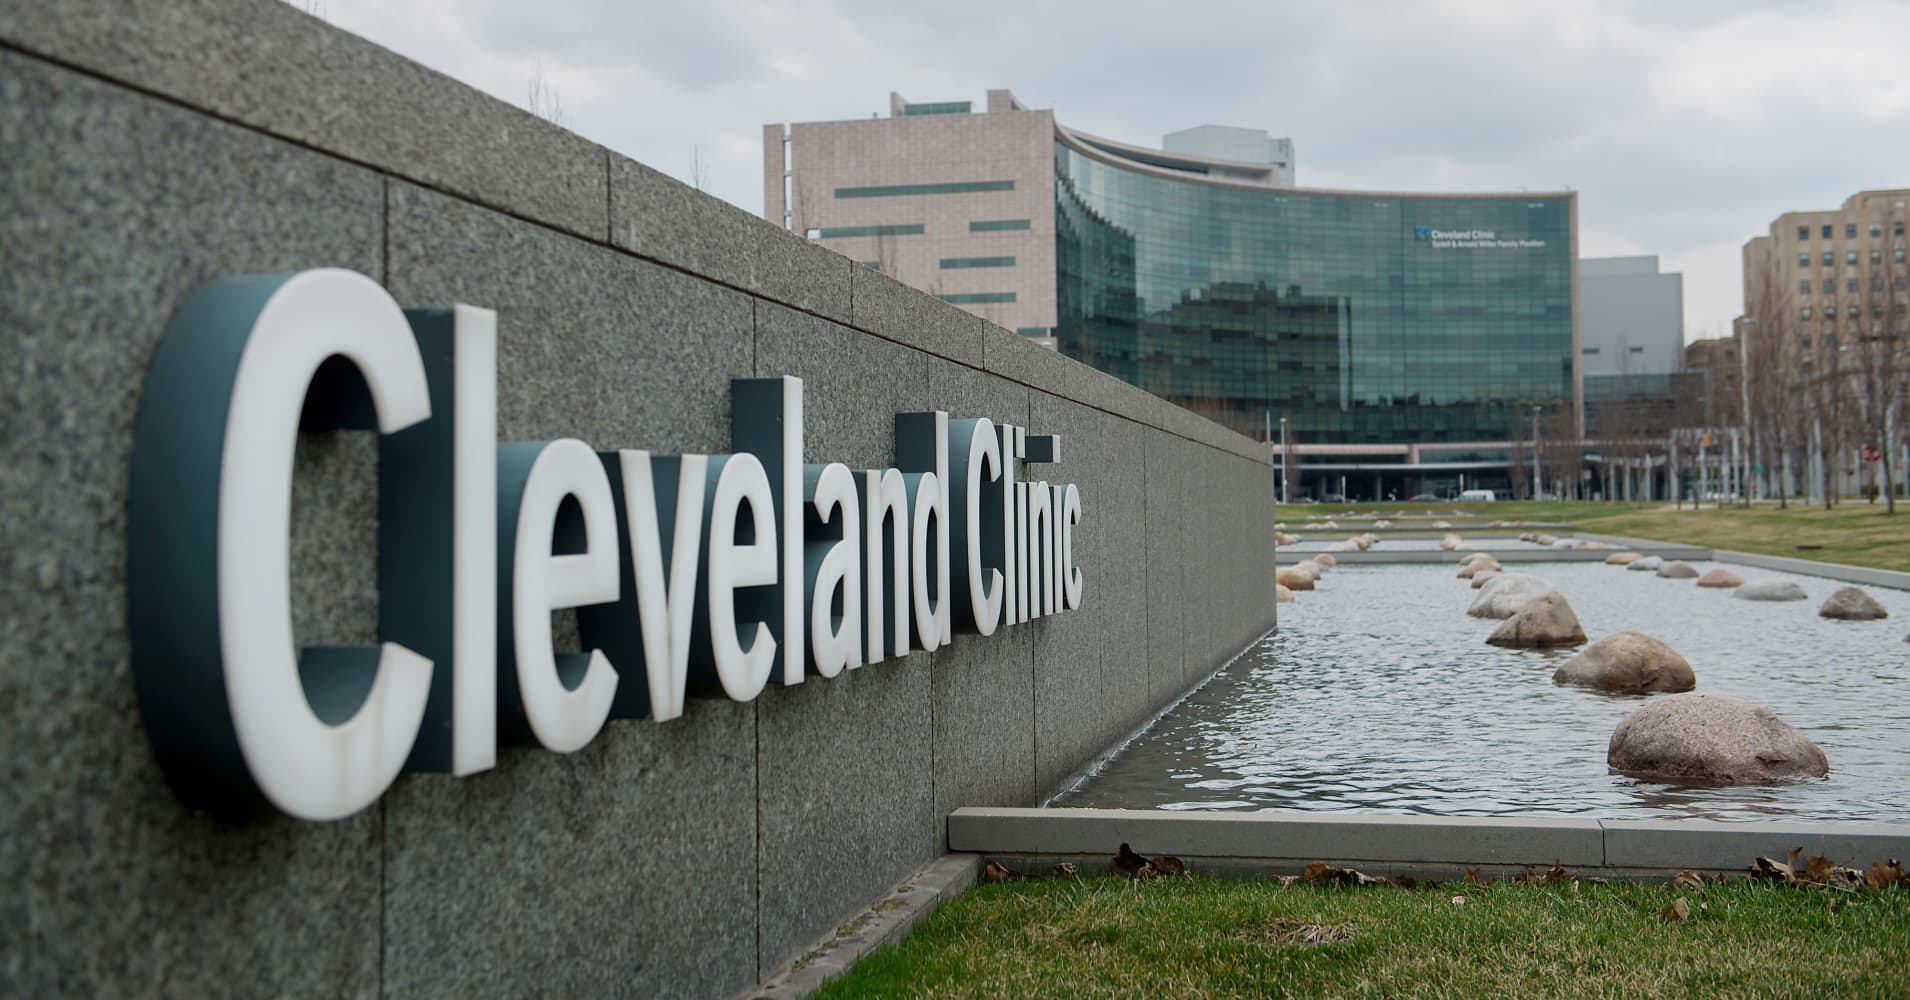 We'll work to verify Theranos technology: Cleveland Clinic CEO